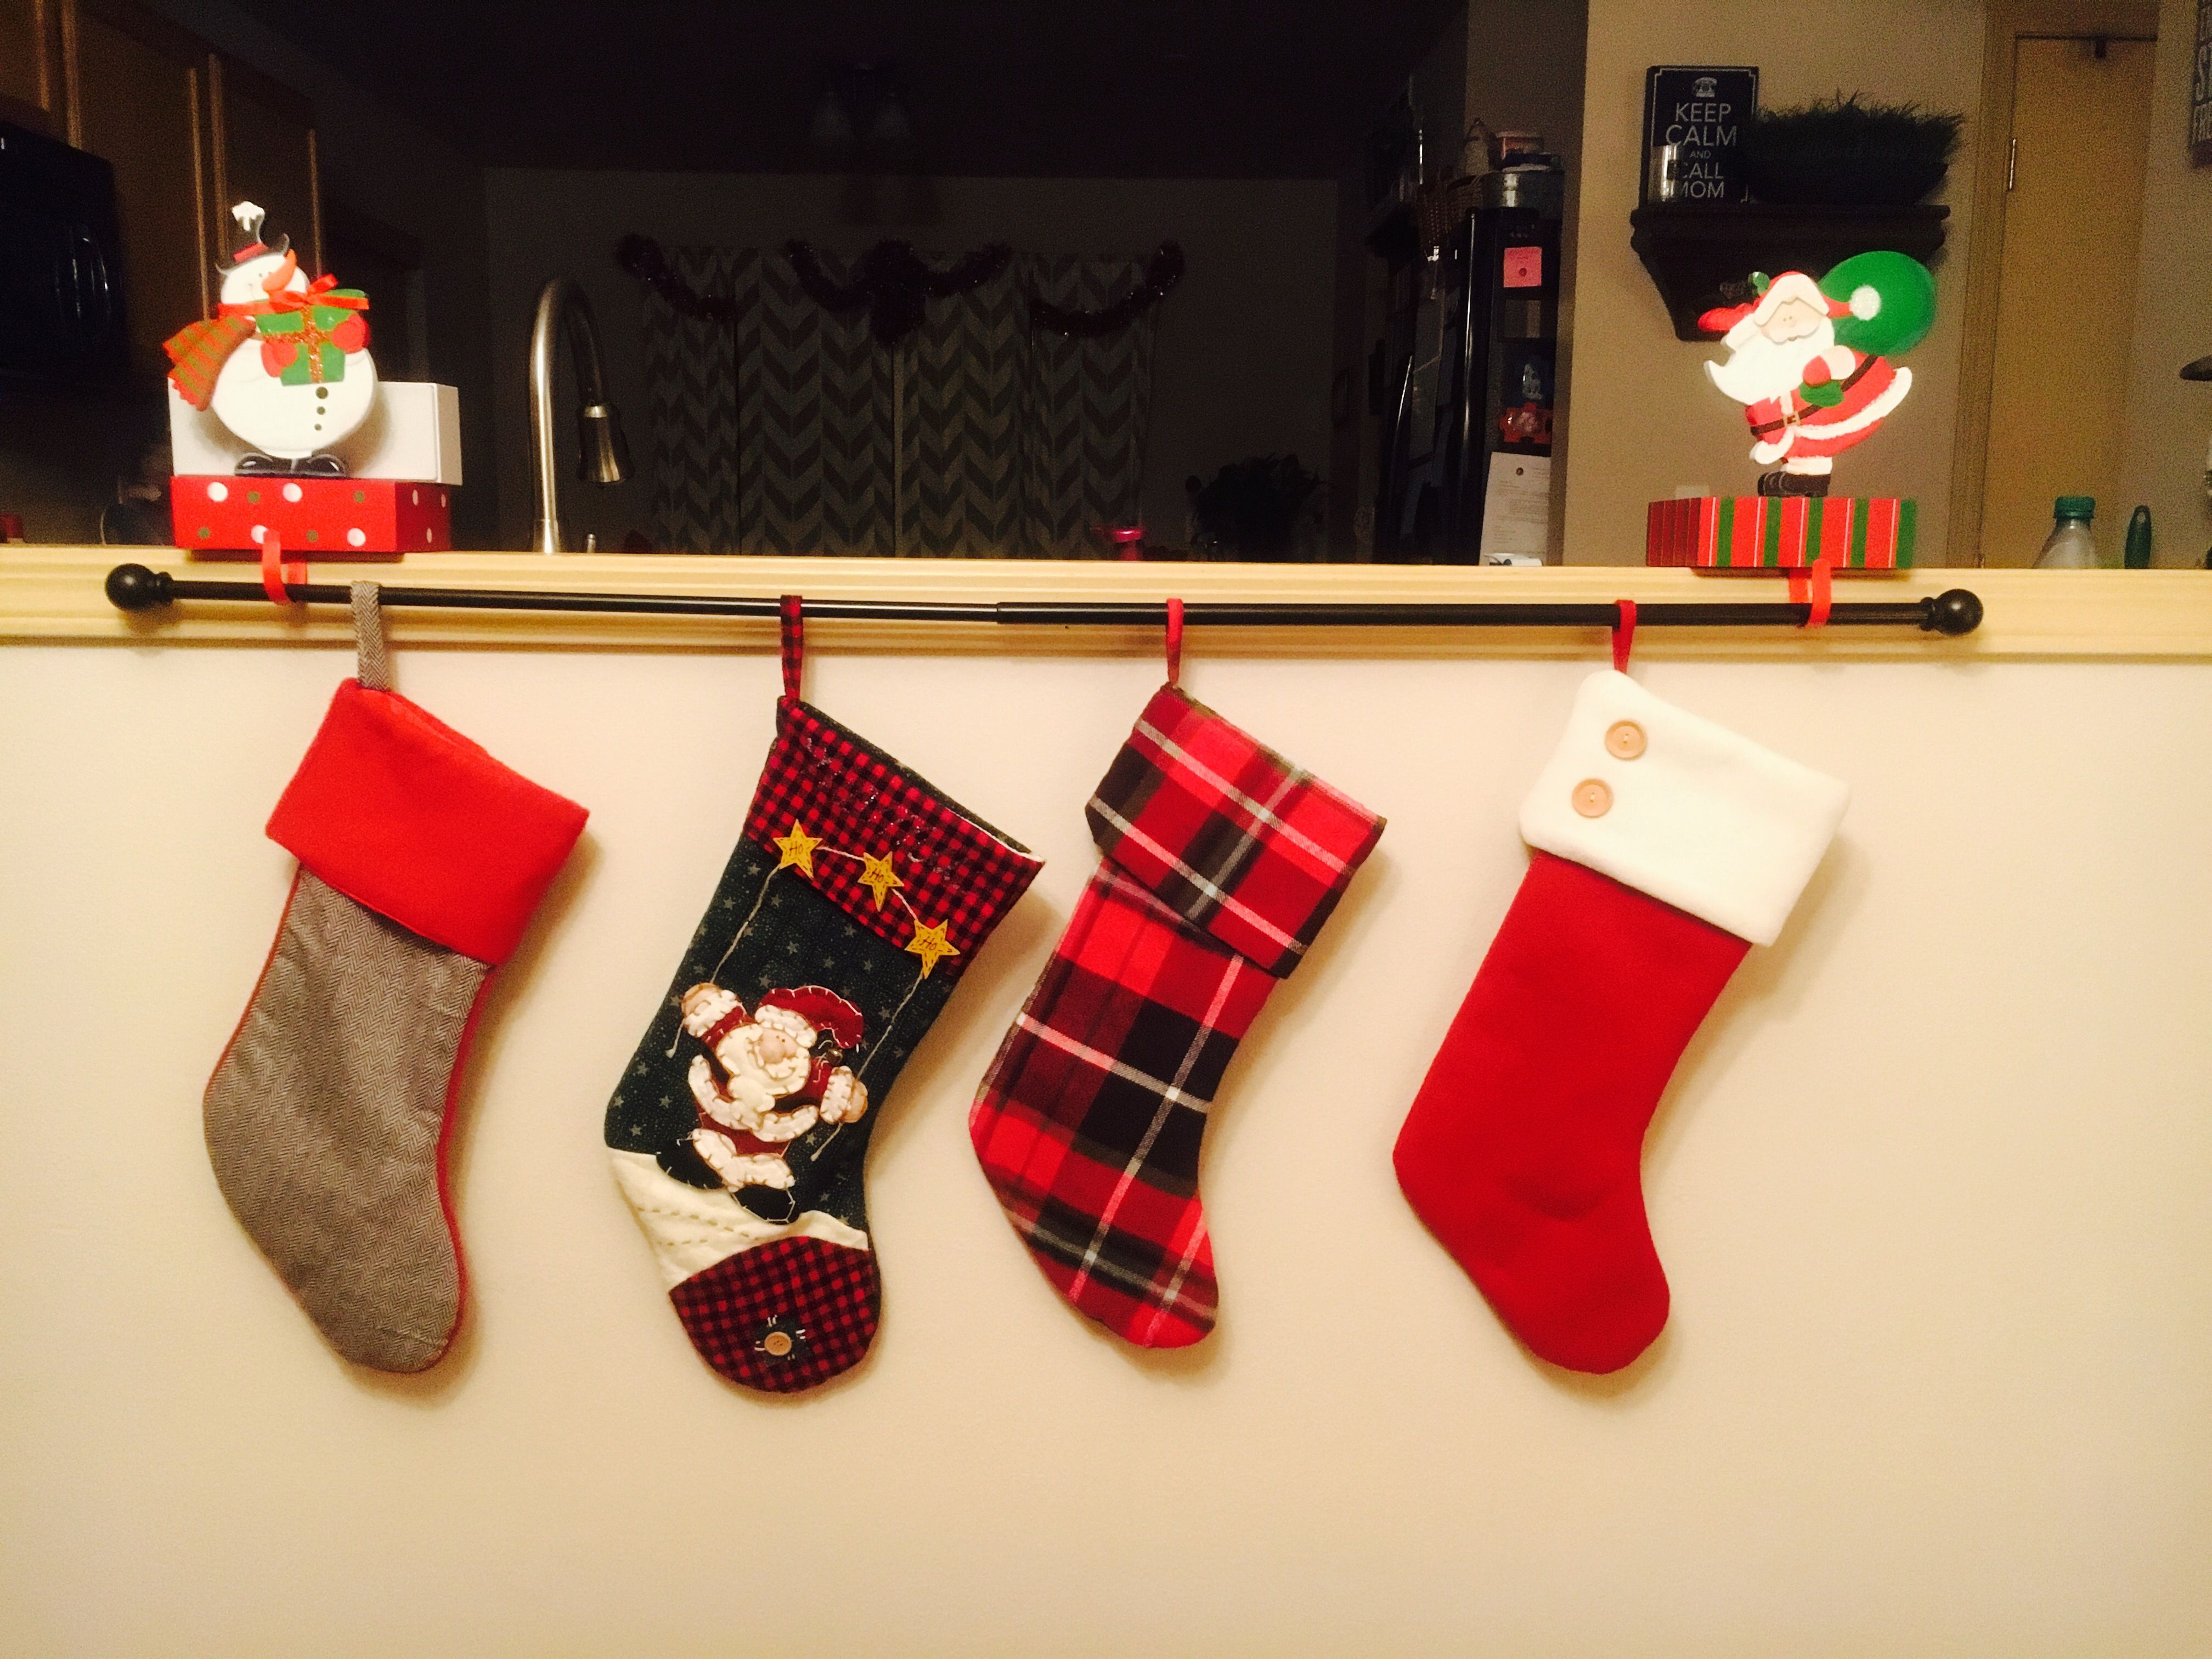 No Fireplace Or Mantle Hang Stockings On A Curtain Rod Using 2 3 Stocking Hangers On Ledge Shelf Or Tv Stand Enter Hanging Stockings Mantle Stocking Hanger